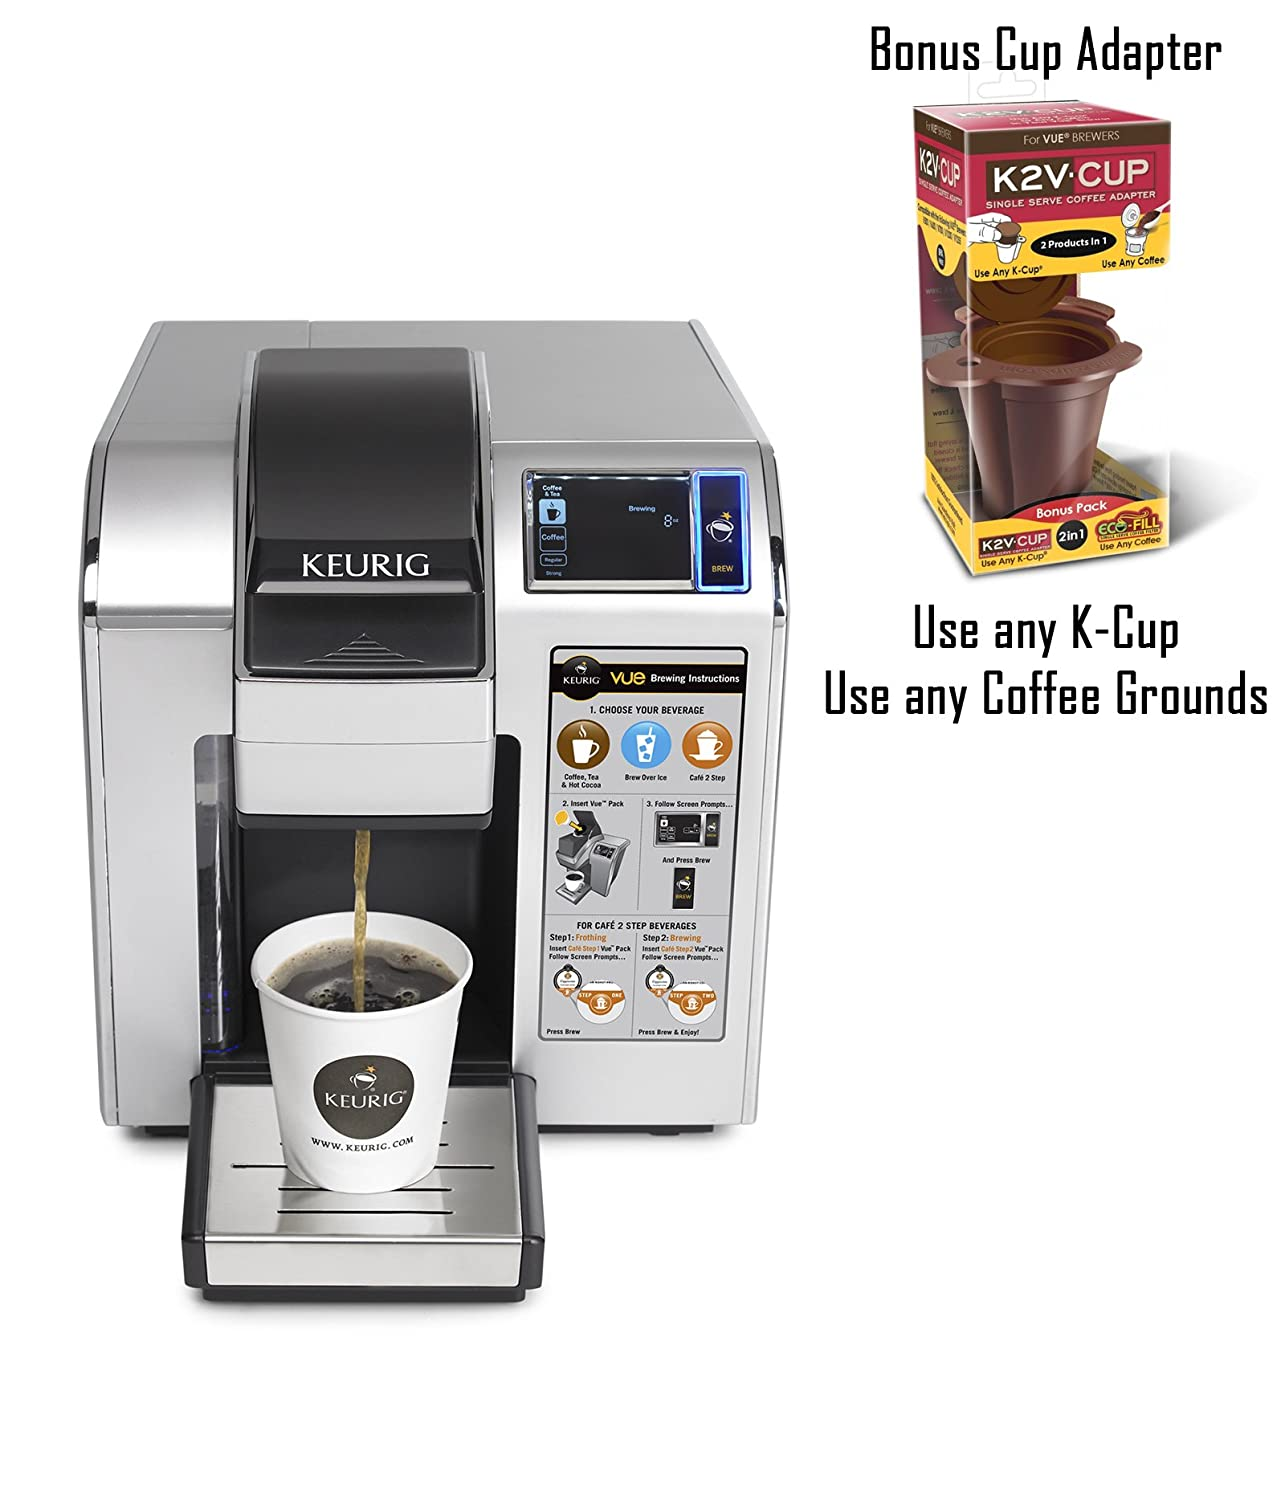 Industrial Coffee Makers Amazoncom Keurig Vue V1200 Commercial Brewing System And Bonus